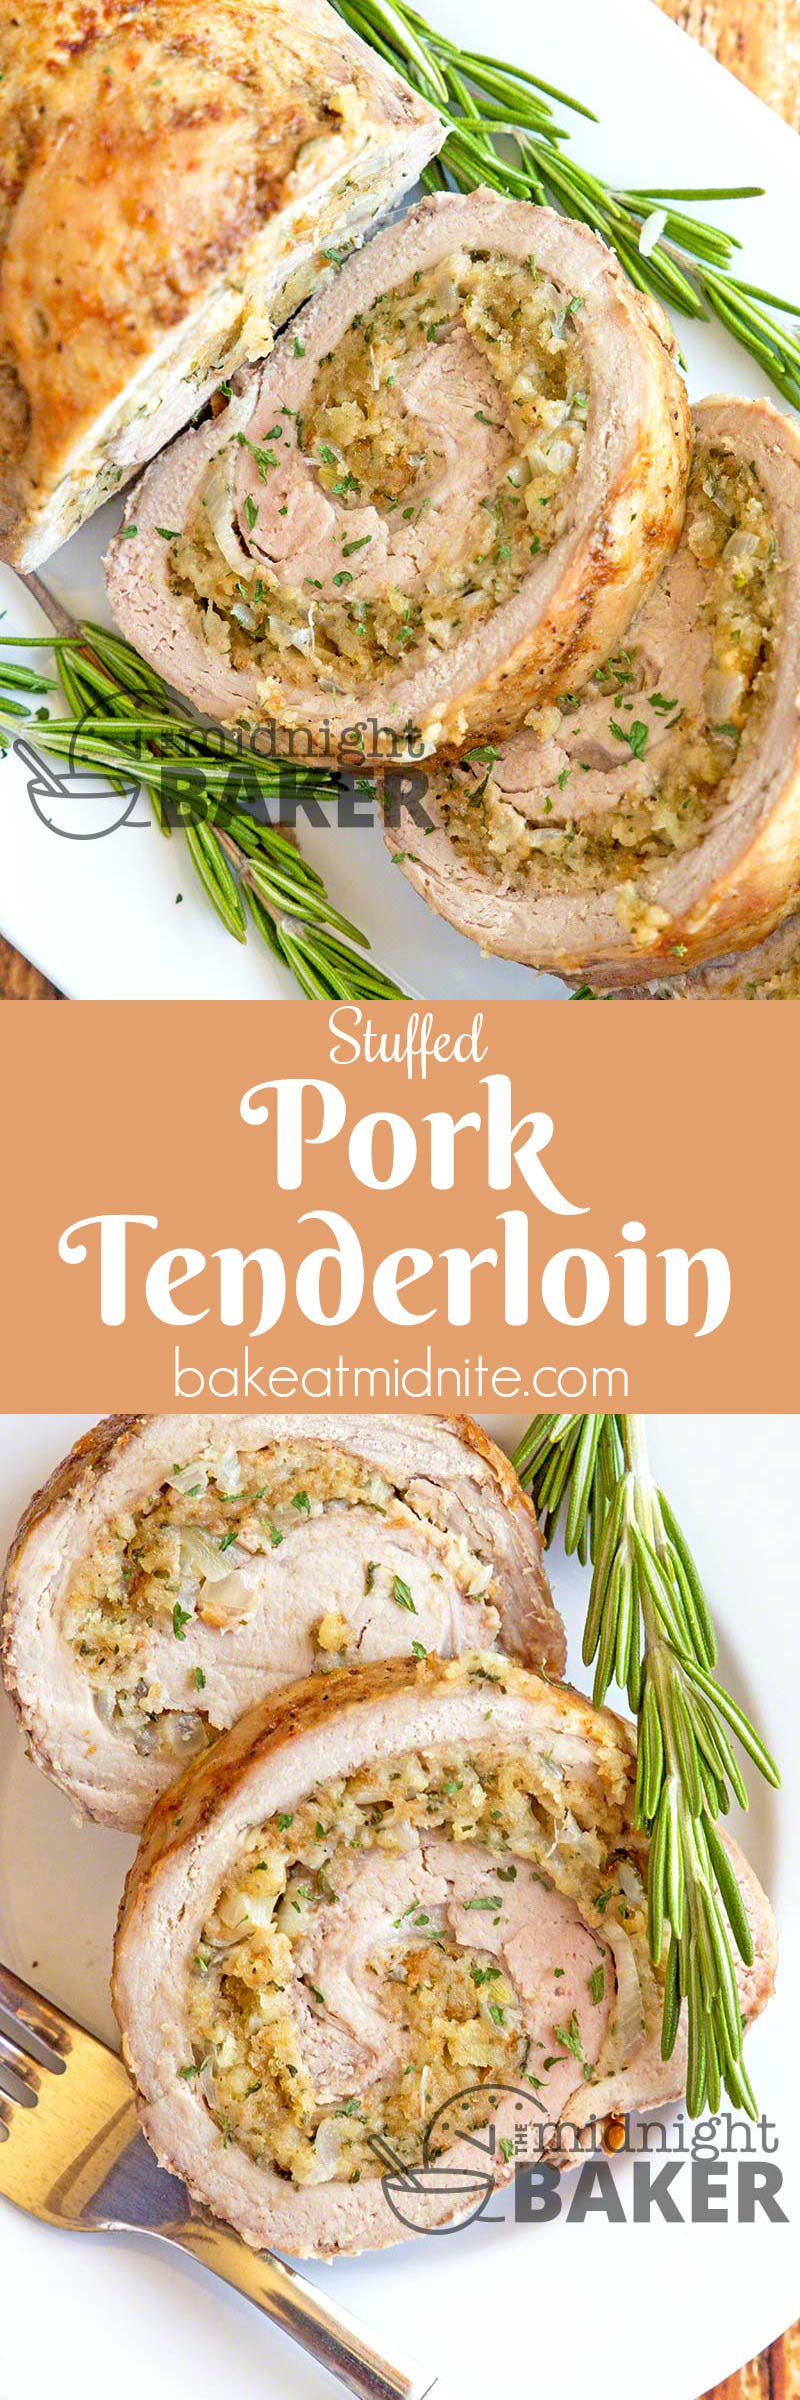 Succulent pork tenderloin stuffed with a rich buttery soft-bread herb stuffing. It's easy to make too!